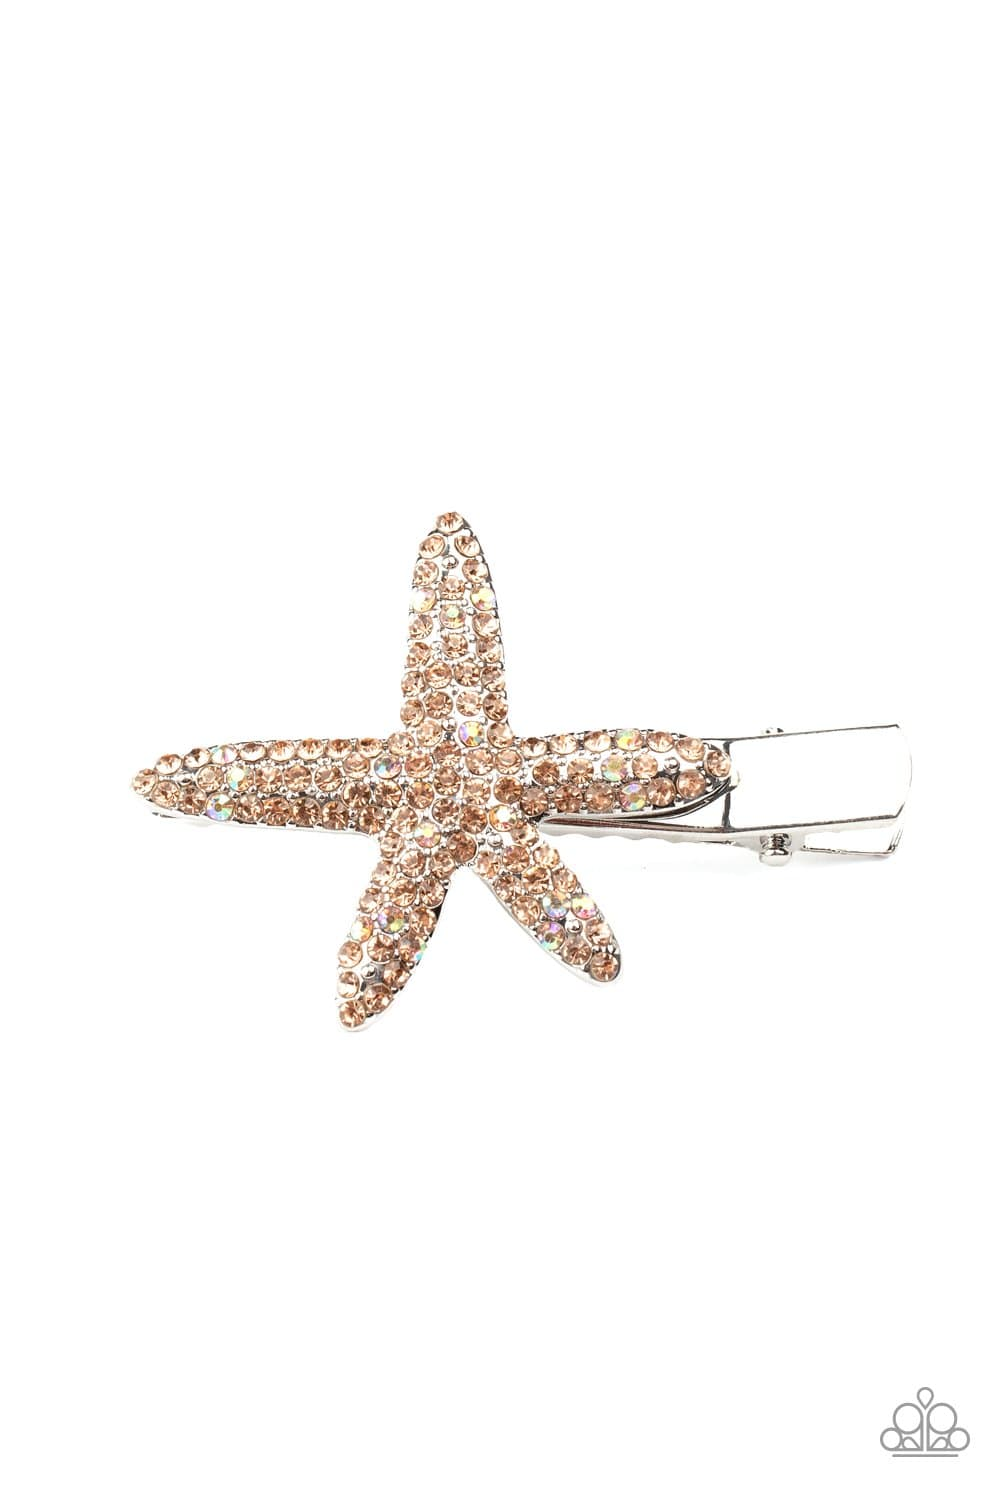 Paparazzi: Wish On a STARFISH - Orange Hair Clip - Jewels N' Thingz Boutique